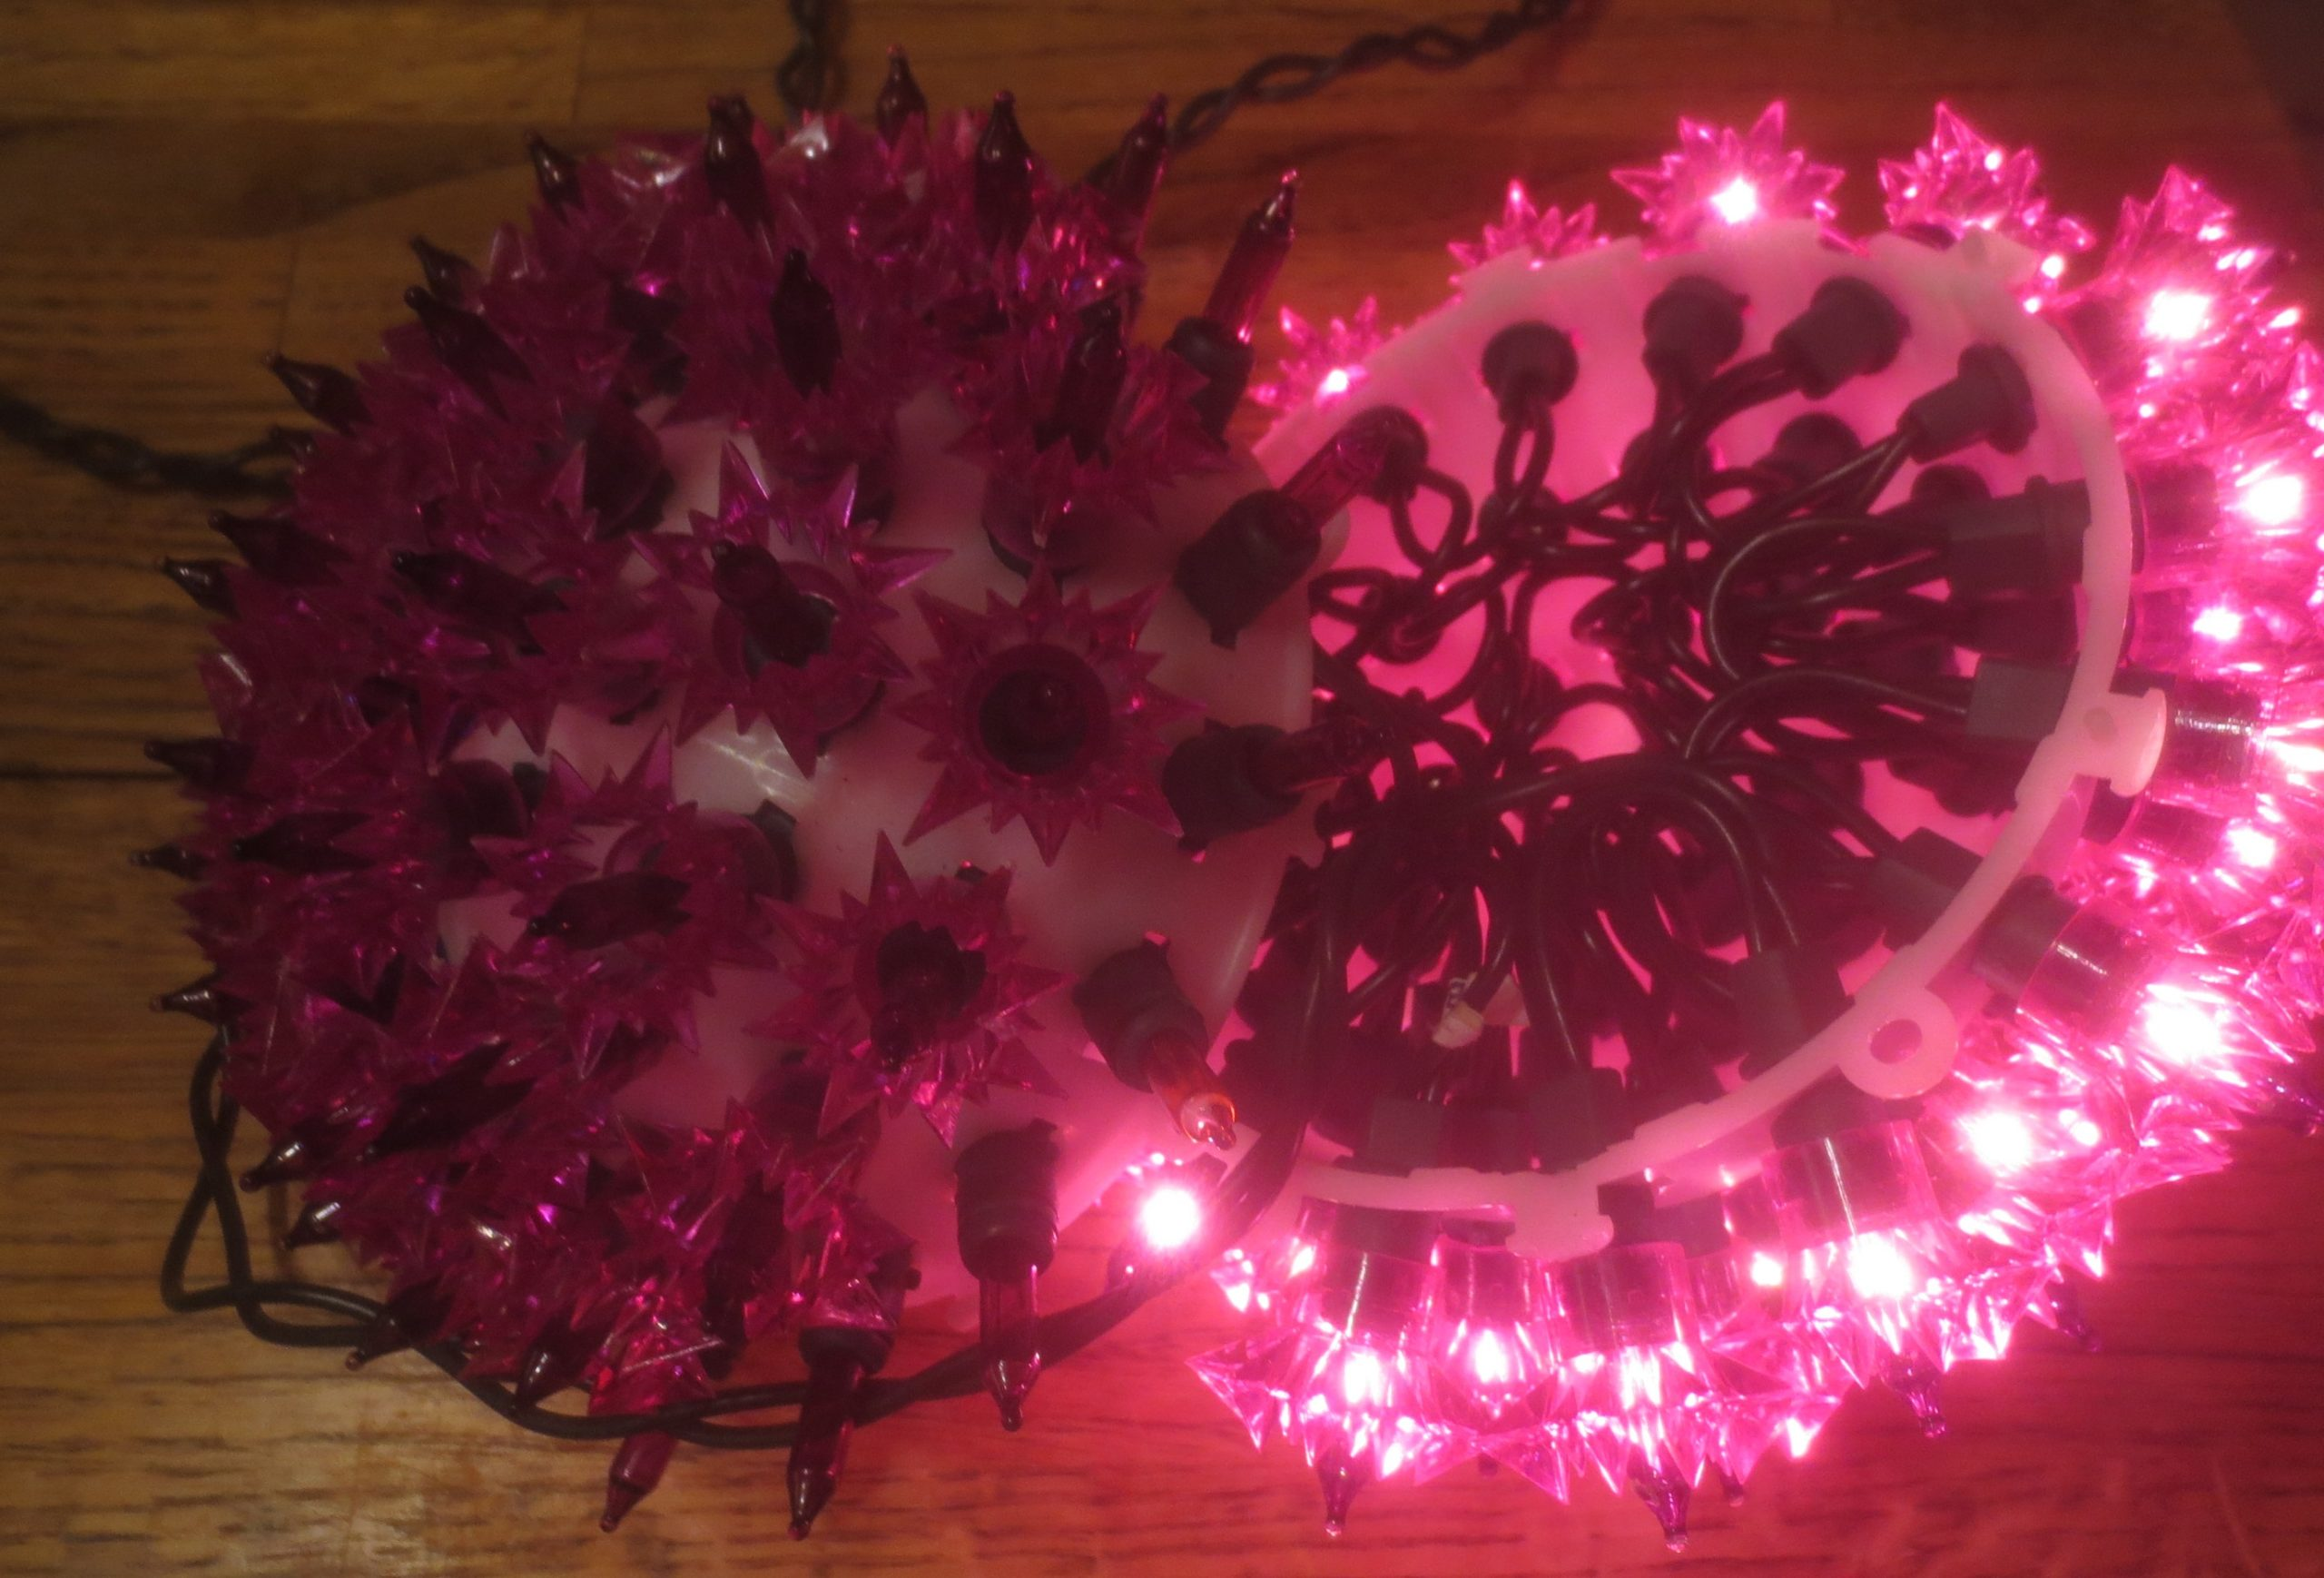 purple ball made form Christmas lights, partially disassembled